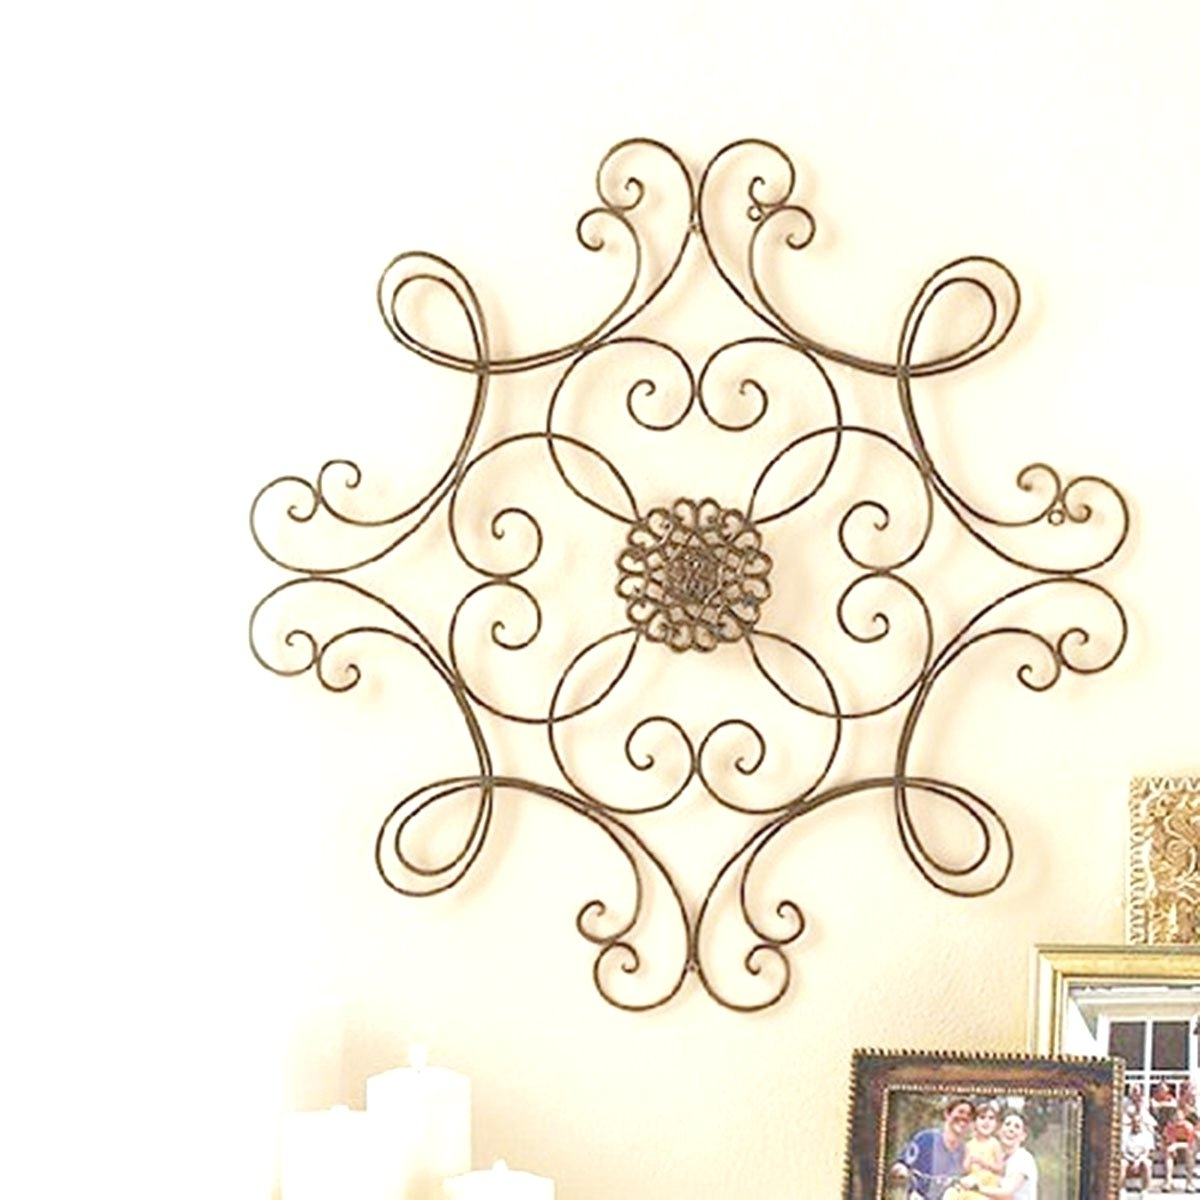 Decorative Metal Disc Wall Art Intended For Preferred Wall Arts ~ Metal Wall Art Website Inspiration Iron Wall Decor (Gallery 11 of 15)